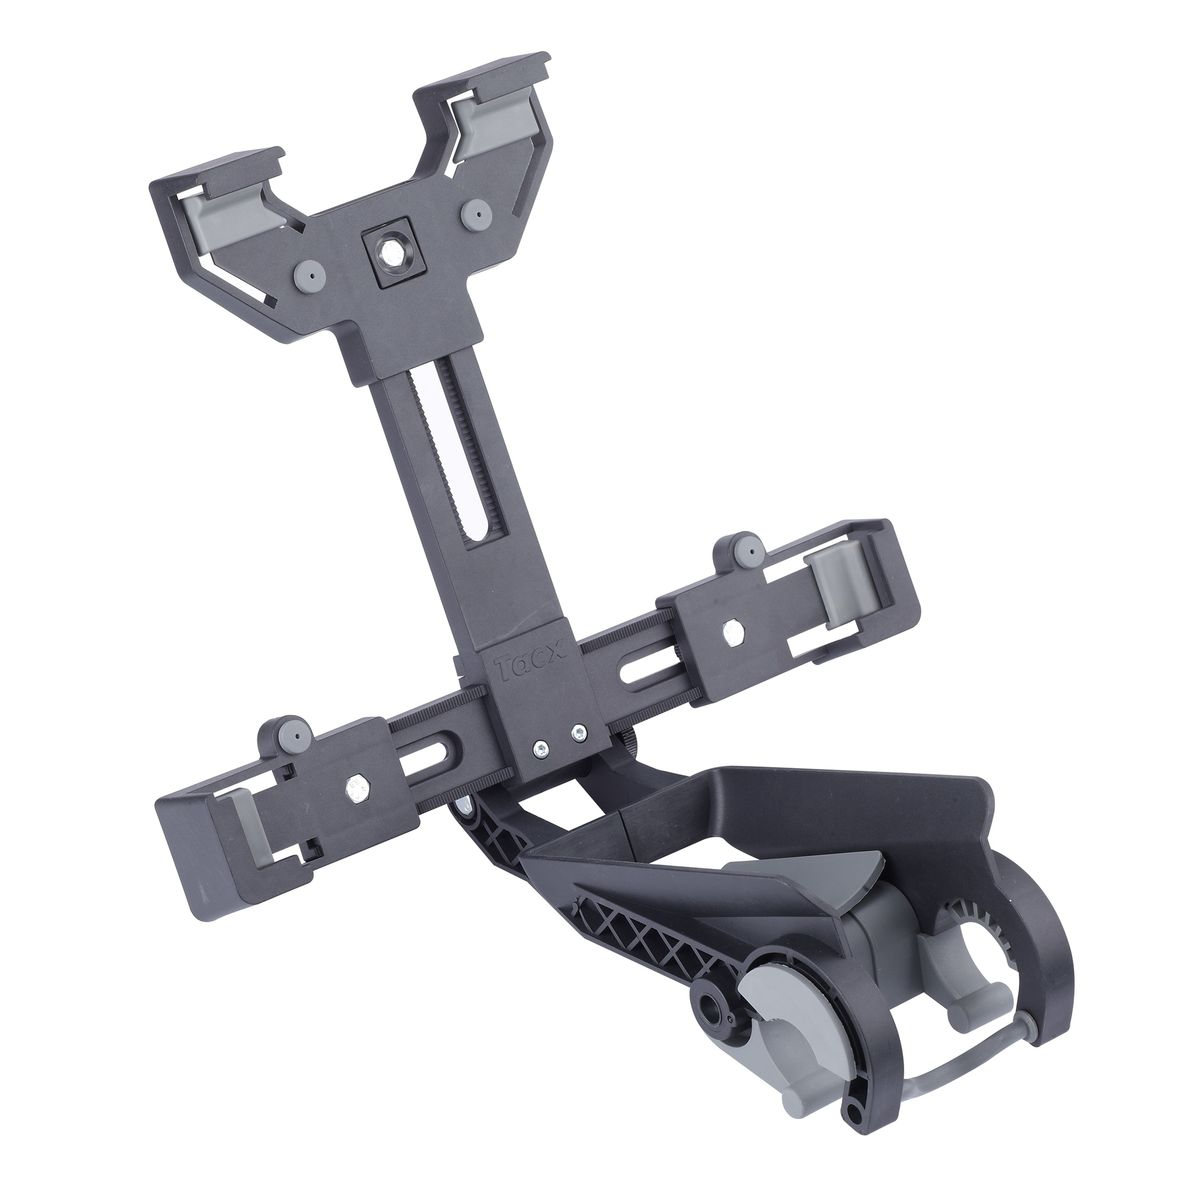 Bracket For Tablets [Mount/Holder]